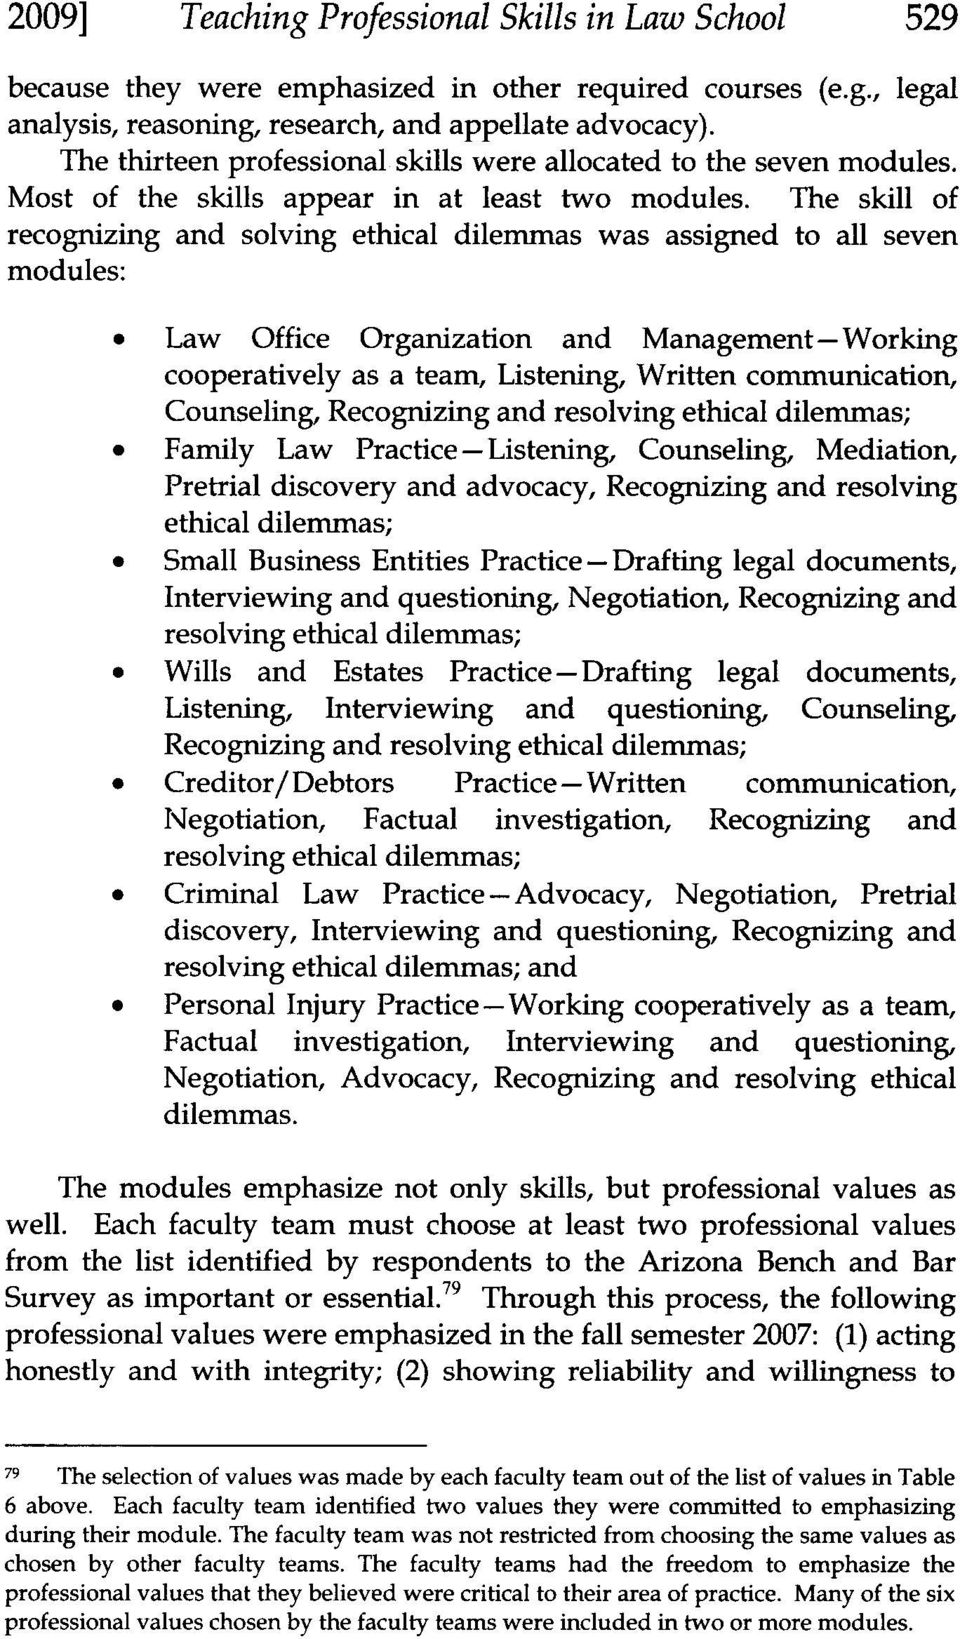 The skill of recognizing and solving ethical dilemmas was assigned to all seven modules: Law Office Organization and Management-Working cooperatively as a team, Listening, Written communication,